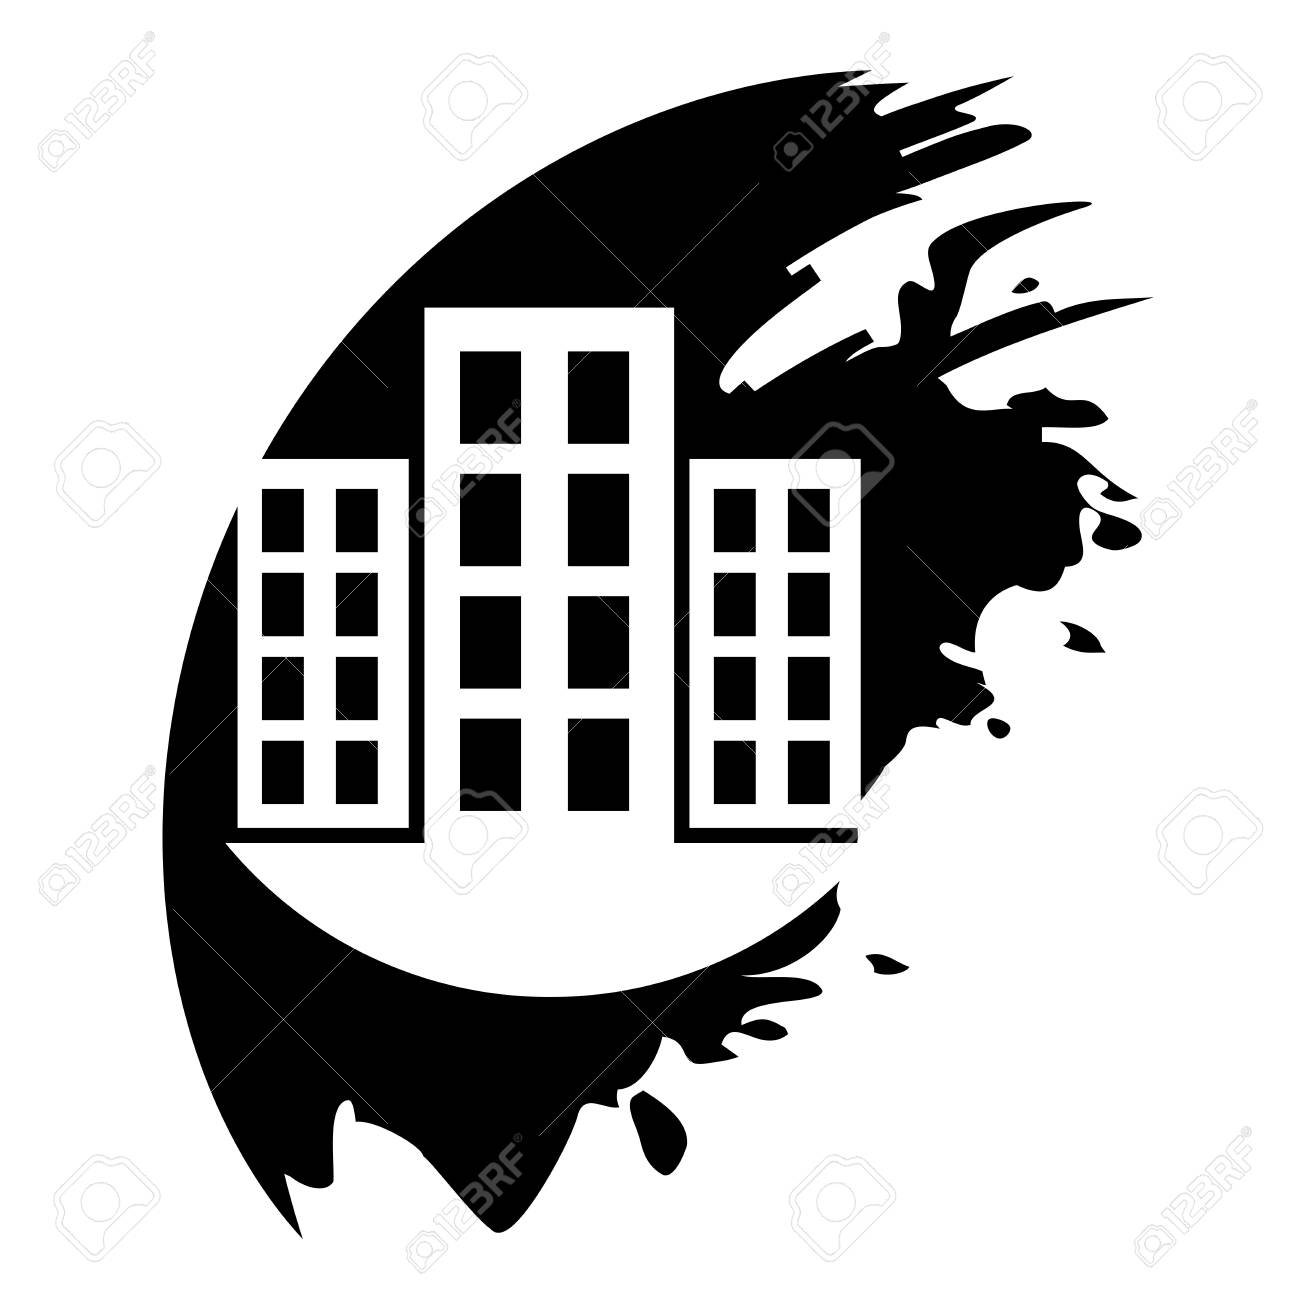 City vector icon Stock Vector - 21687200